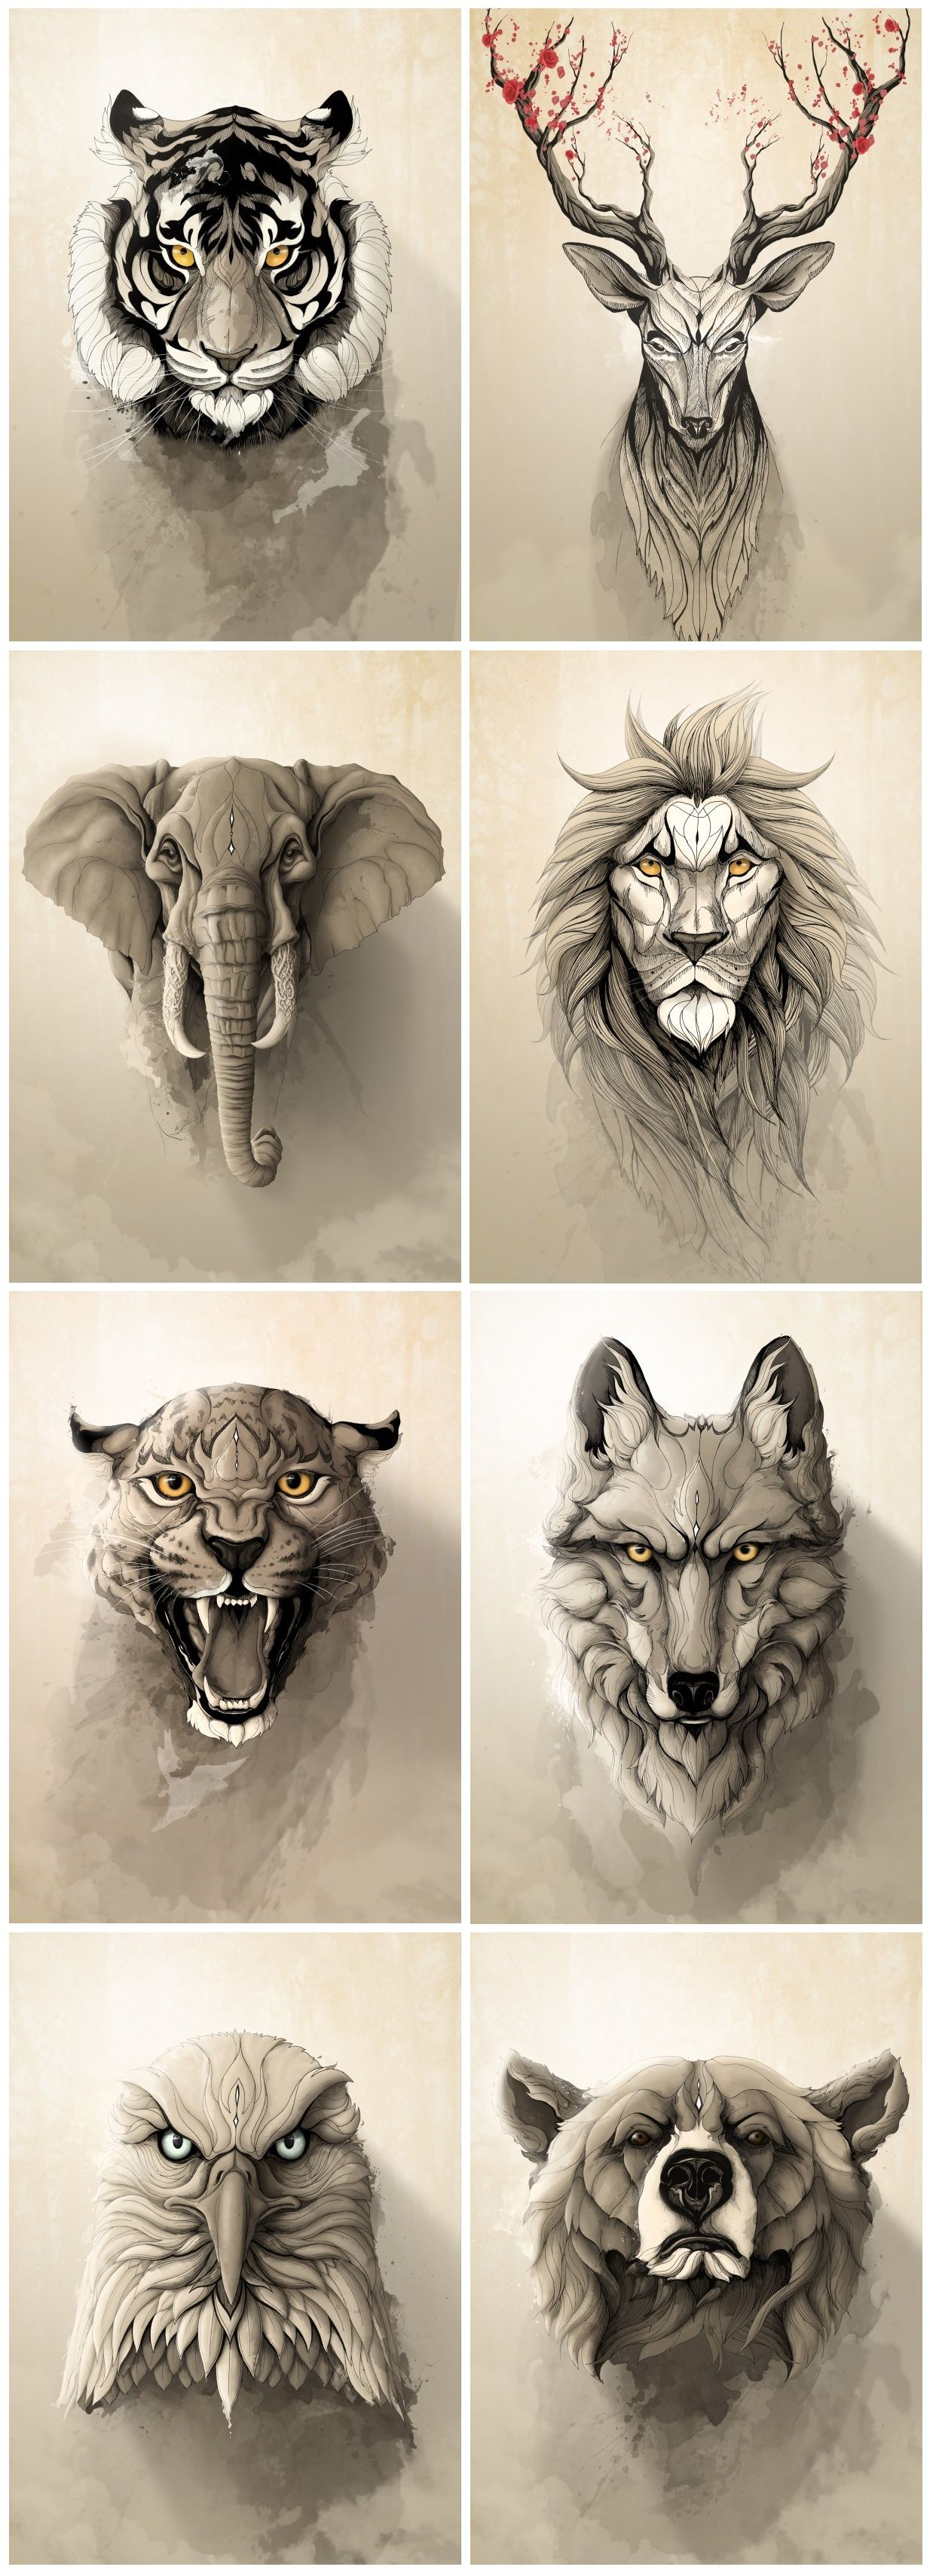 Wolf And Bear Designs For Possible Shoulder Pieces Wild Animals Metal Posters Collection By Rafapasta Cg Anima Animal Tattoos Elephant Tattoos Animal Tattoo